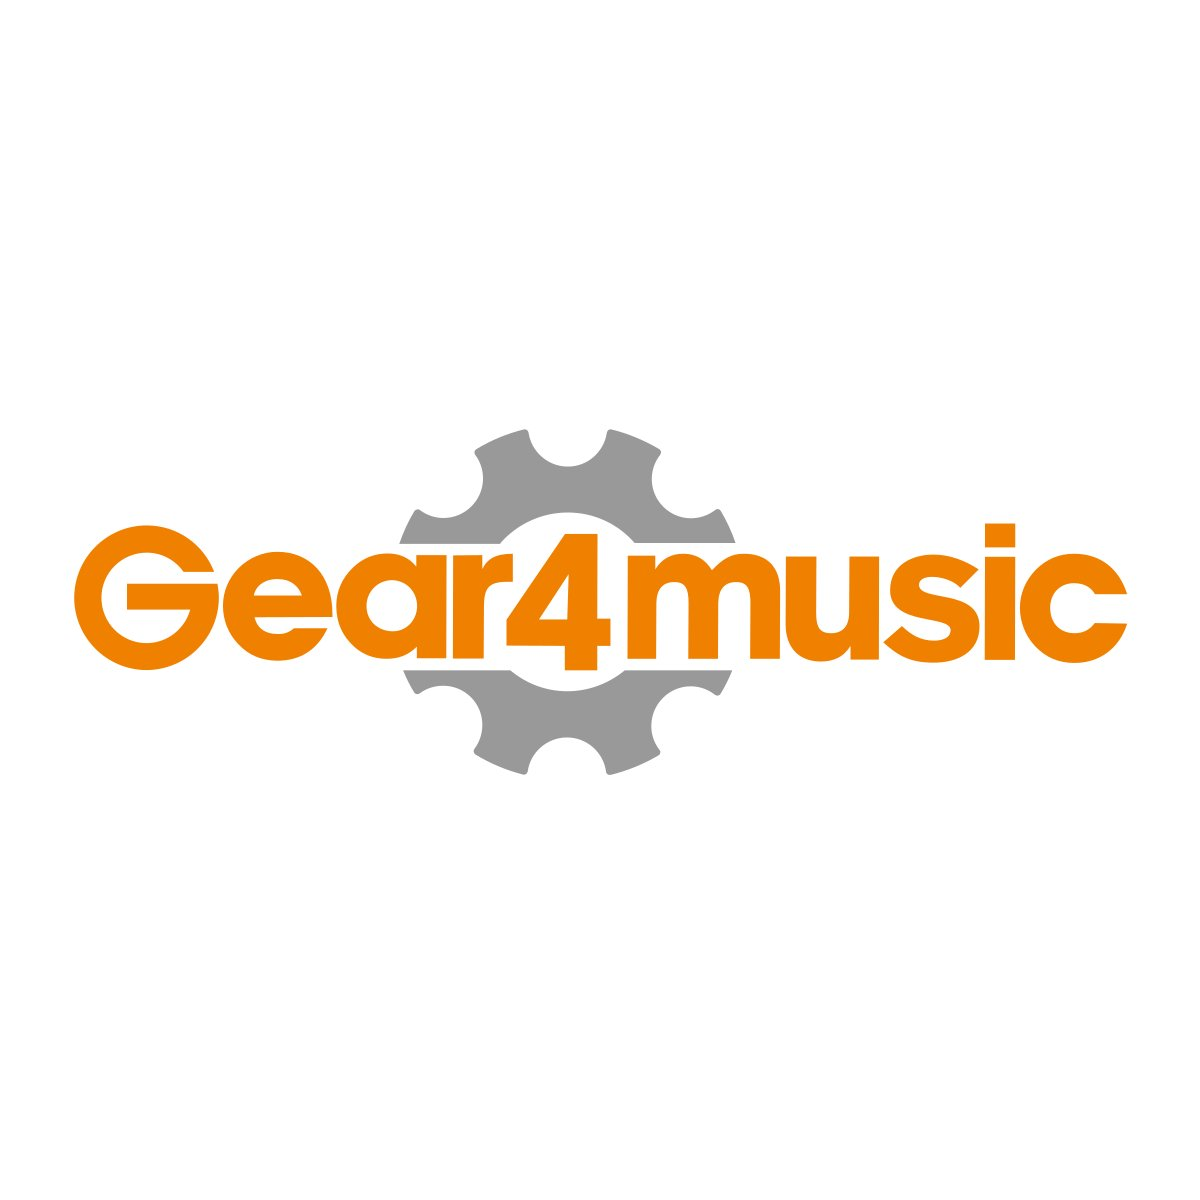 Deluxe Trumpet by Gear4music, Gold